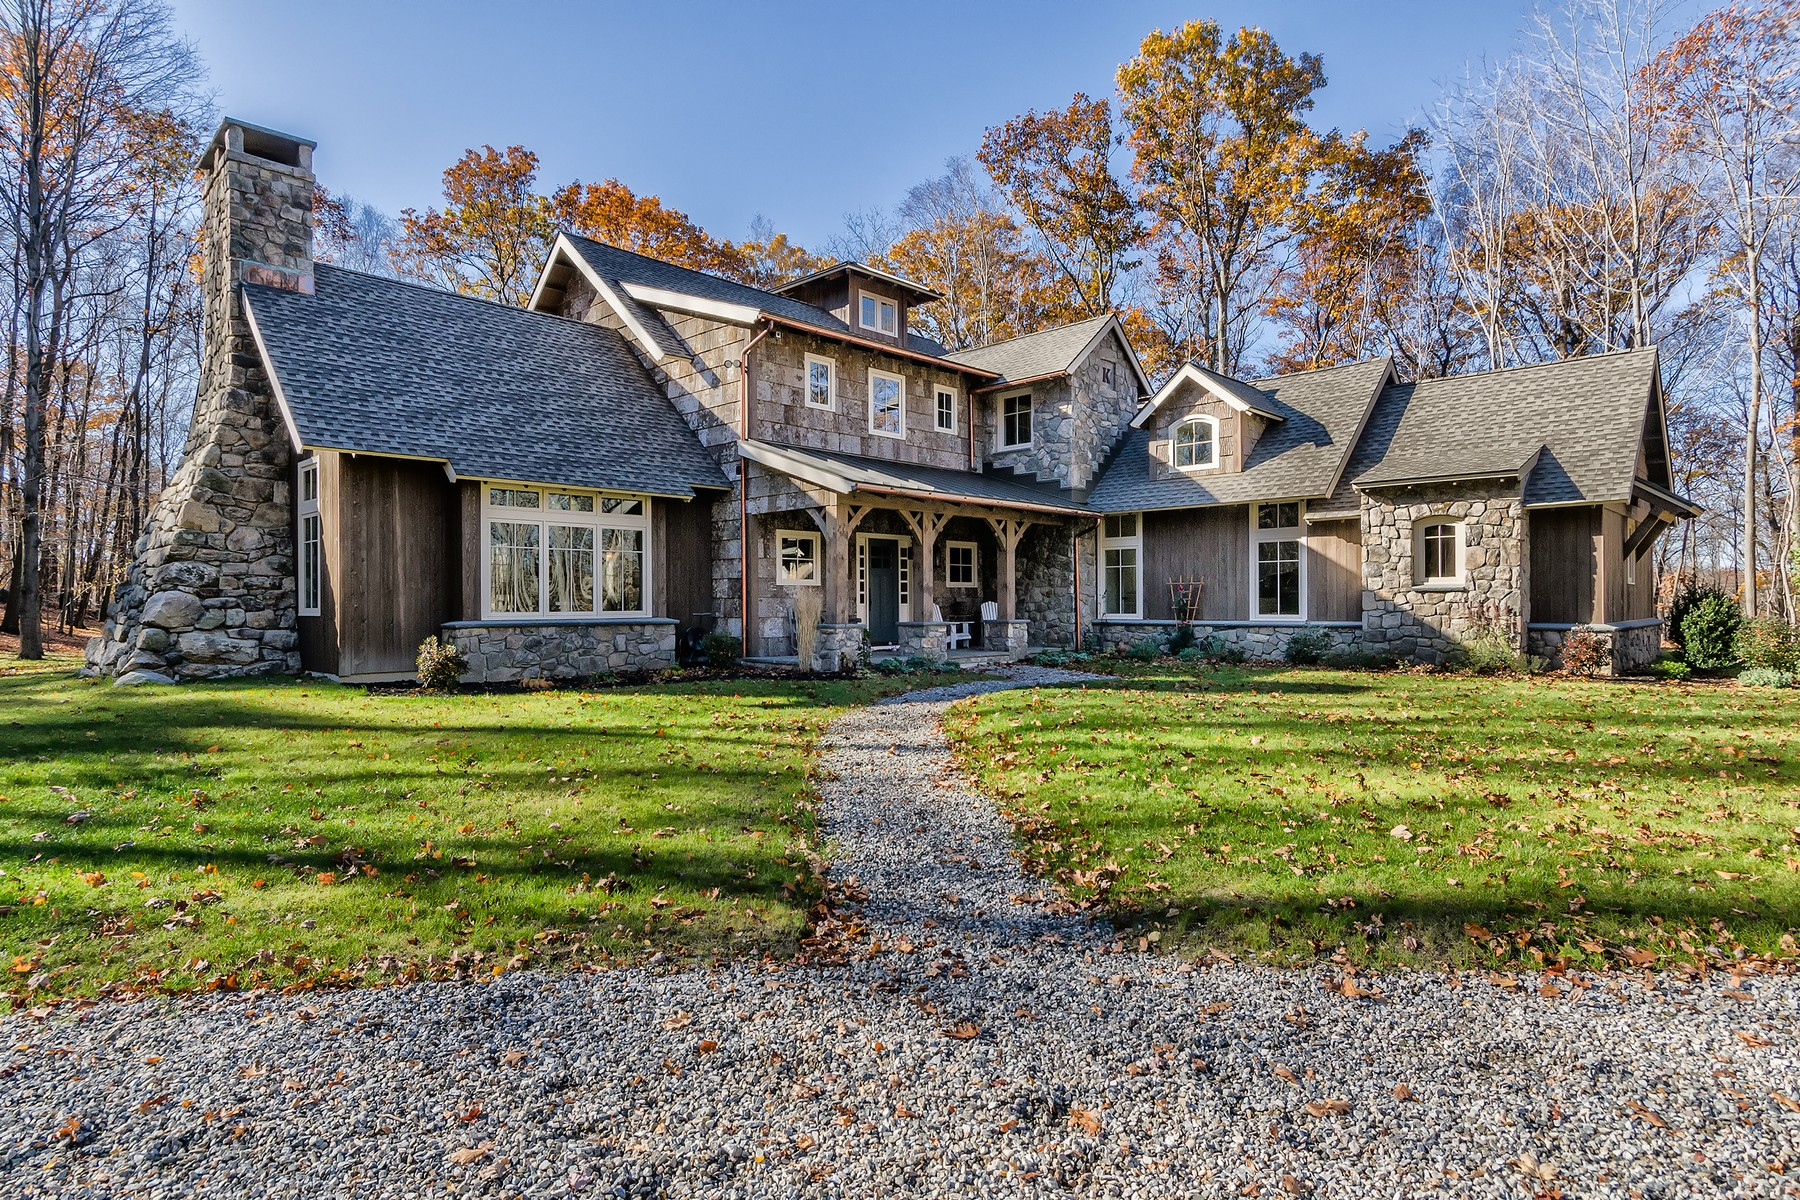 Single Family Home for Sale at Custom 4 Bedroom Colonial 49a Middle River Road Danbury, Connecticut 06811 United States